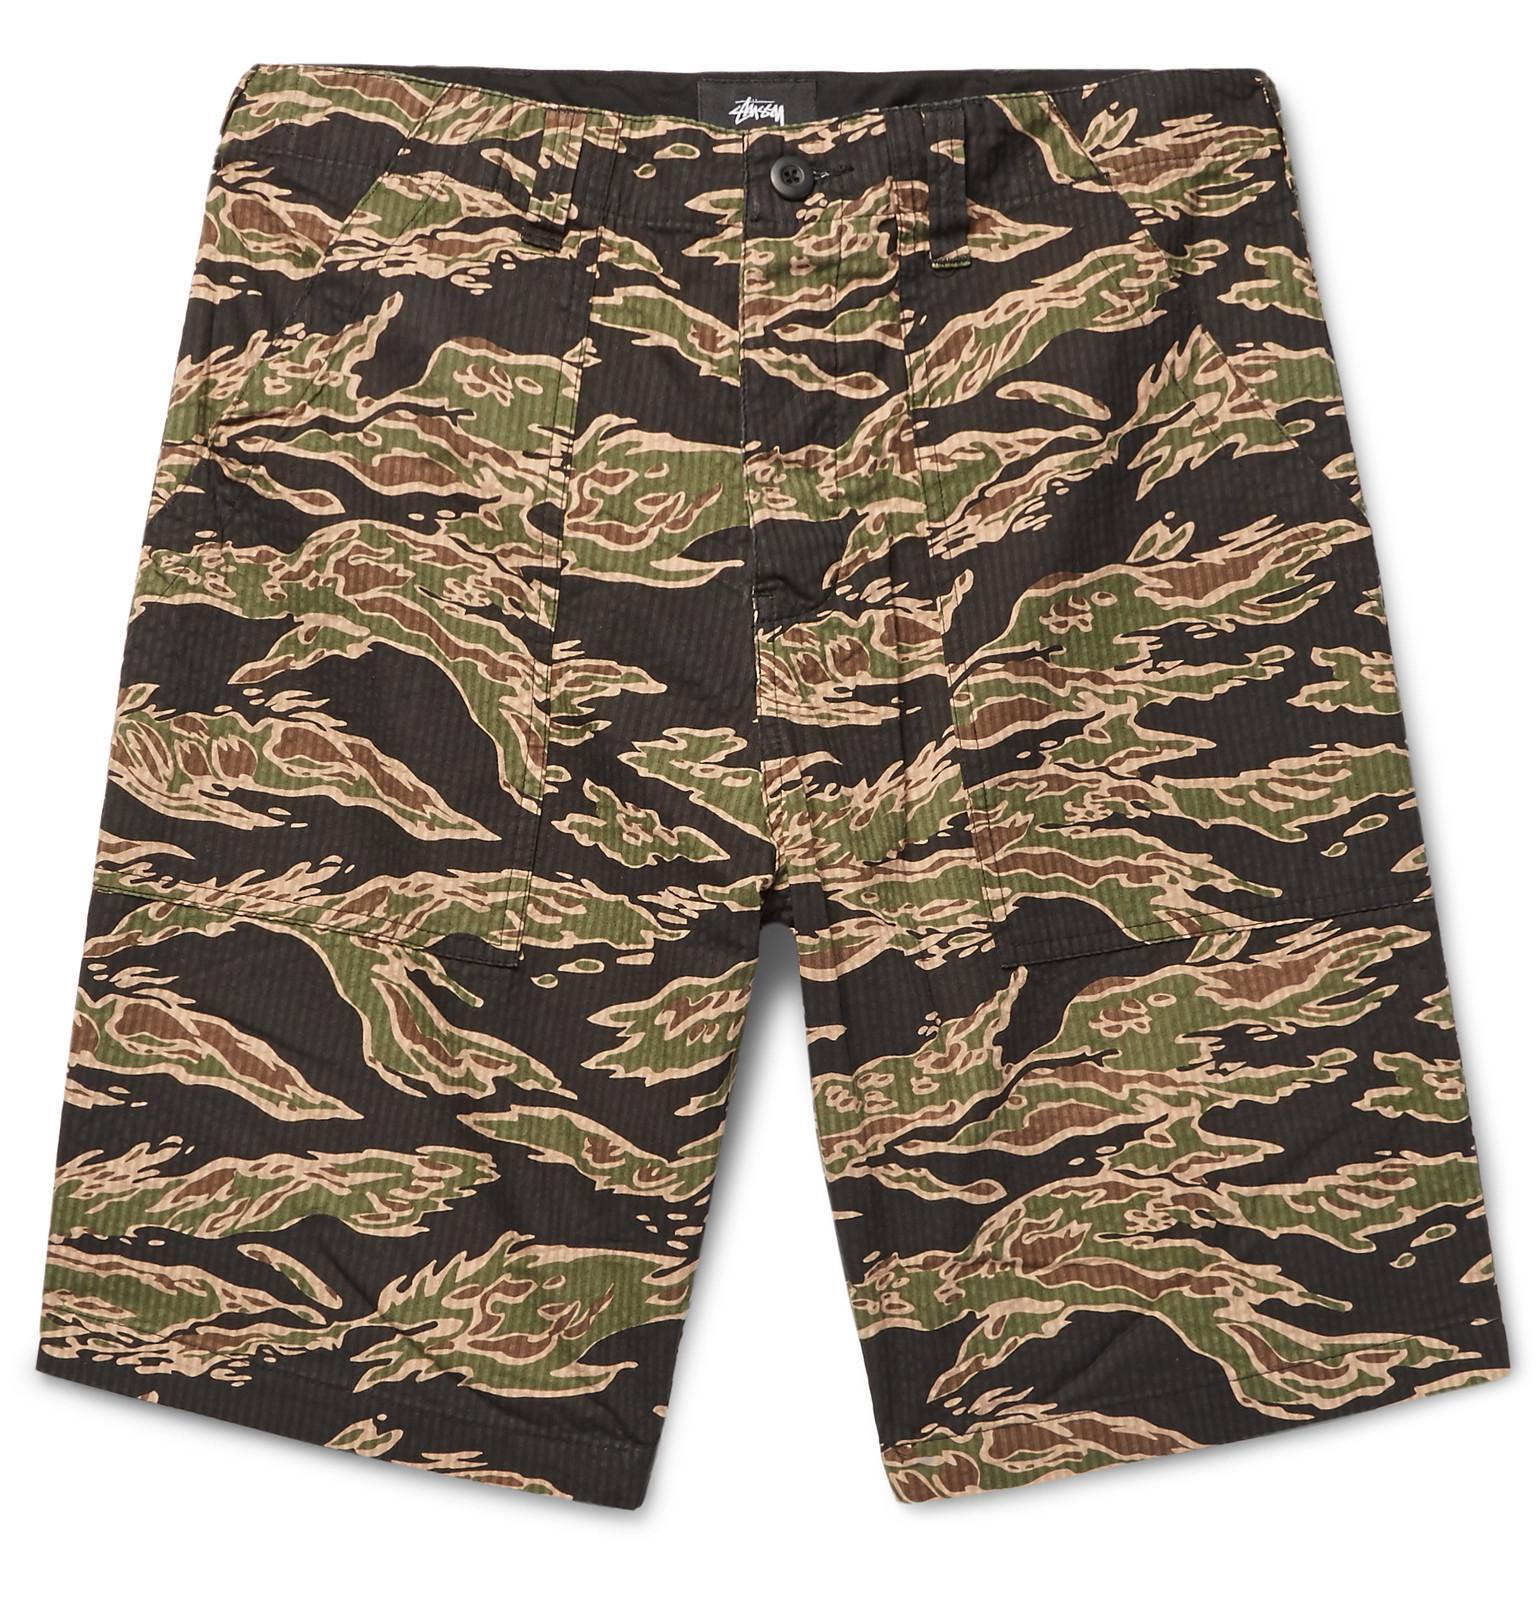 STUSSY Camouflage-print Shell Shorts - Green MUST2TNot